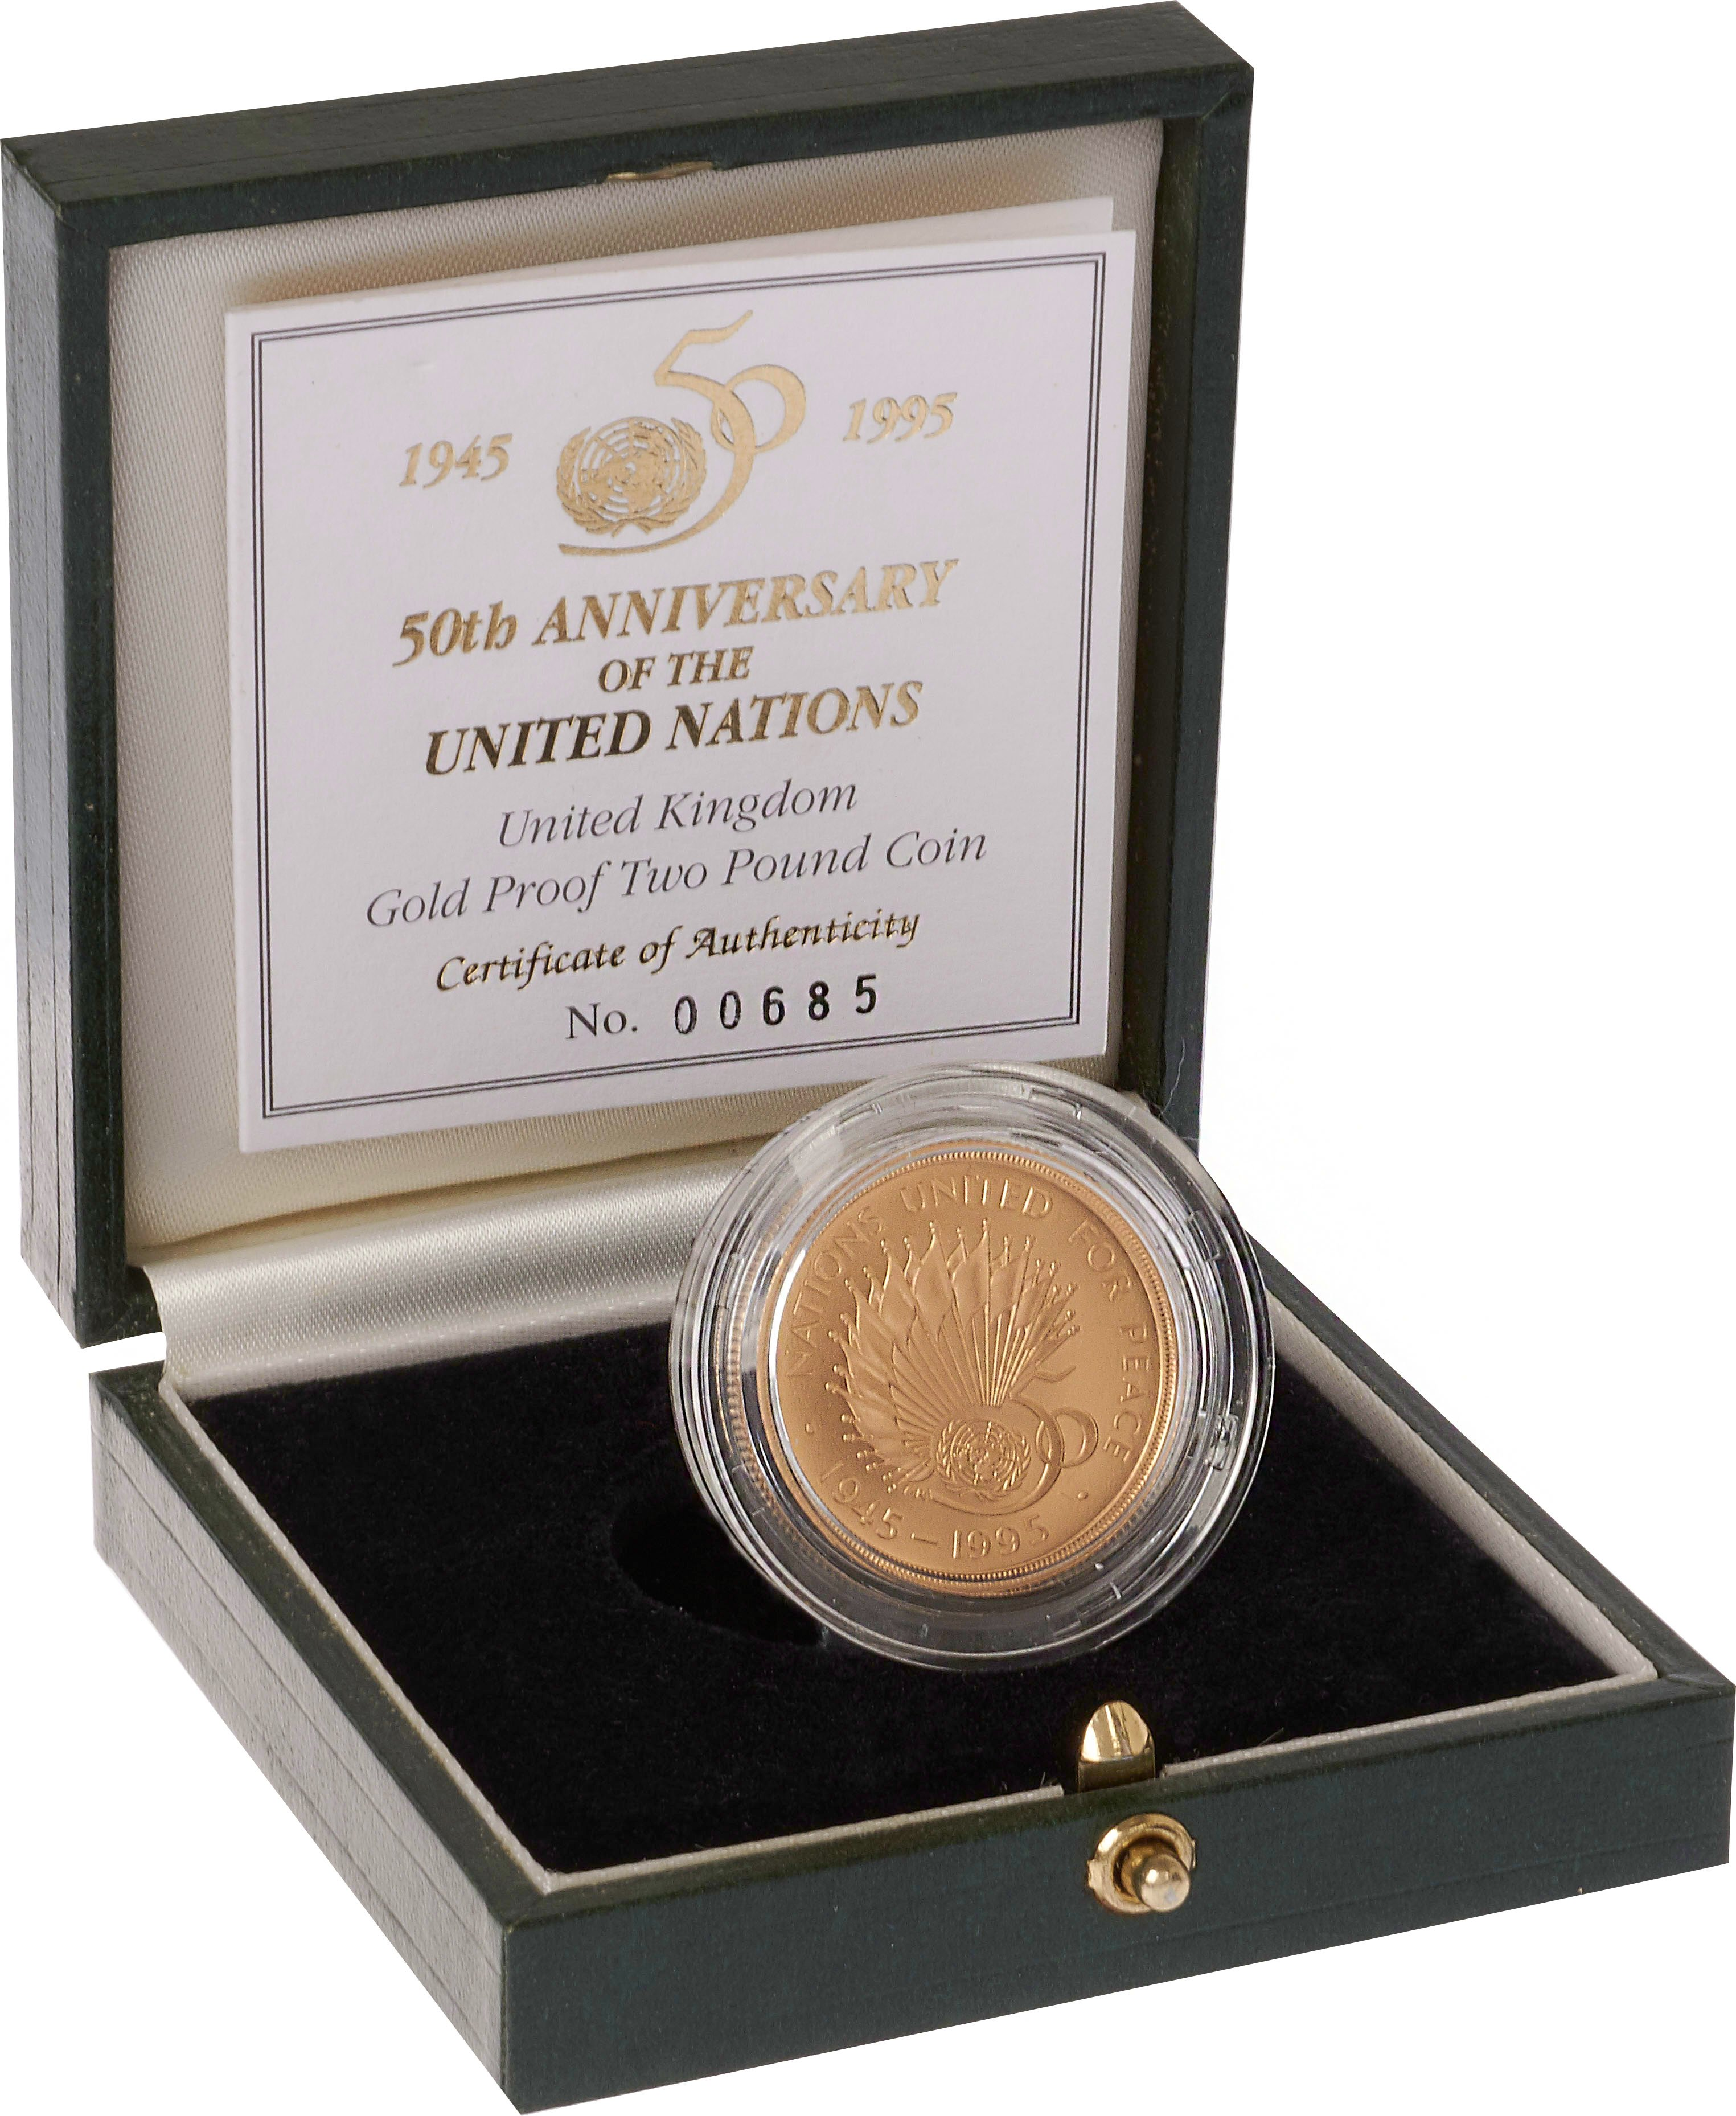 1995 £2 Two Pound Proof Gold Coin: United Nations 50th Anniversary Boxed